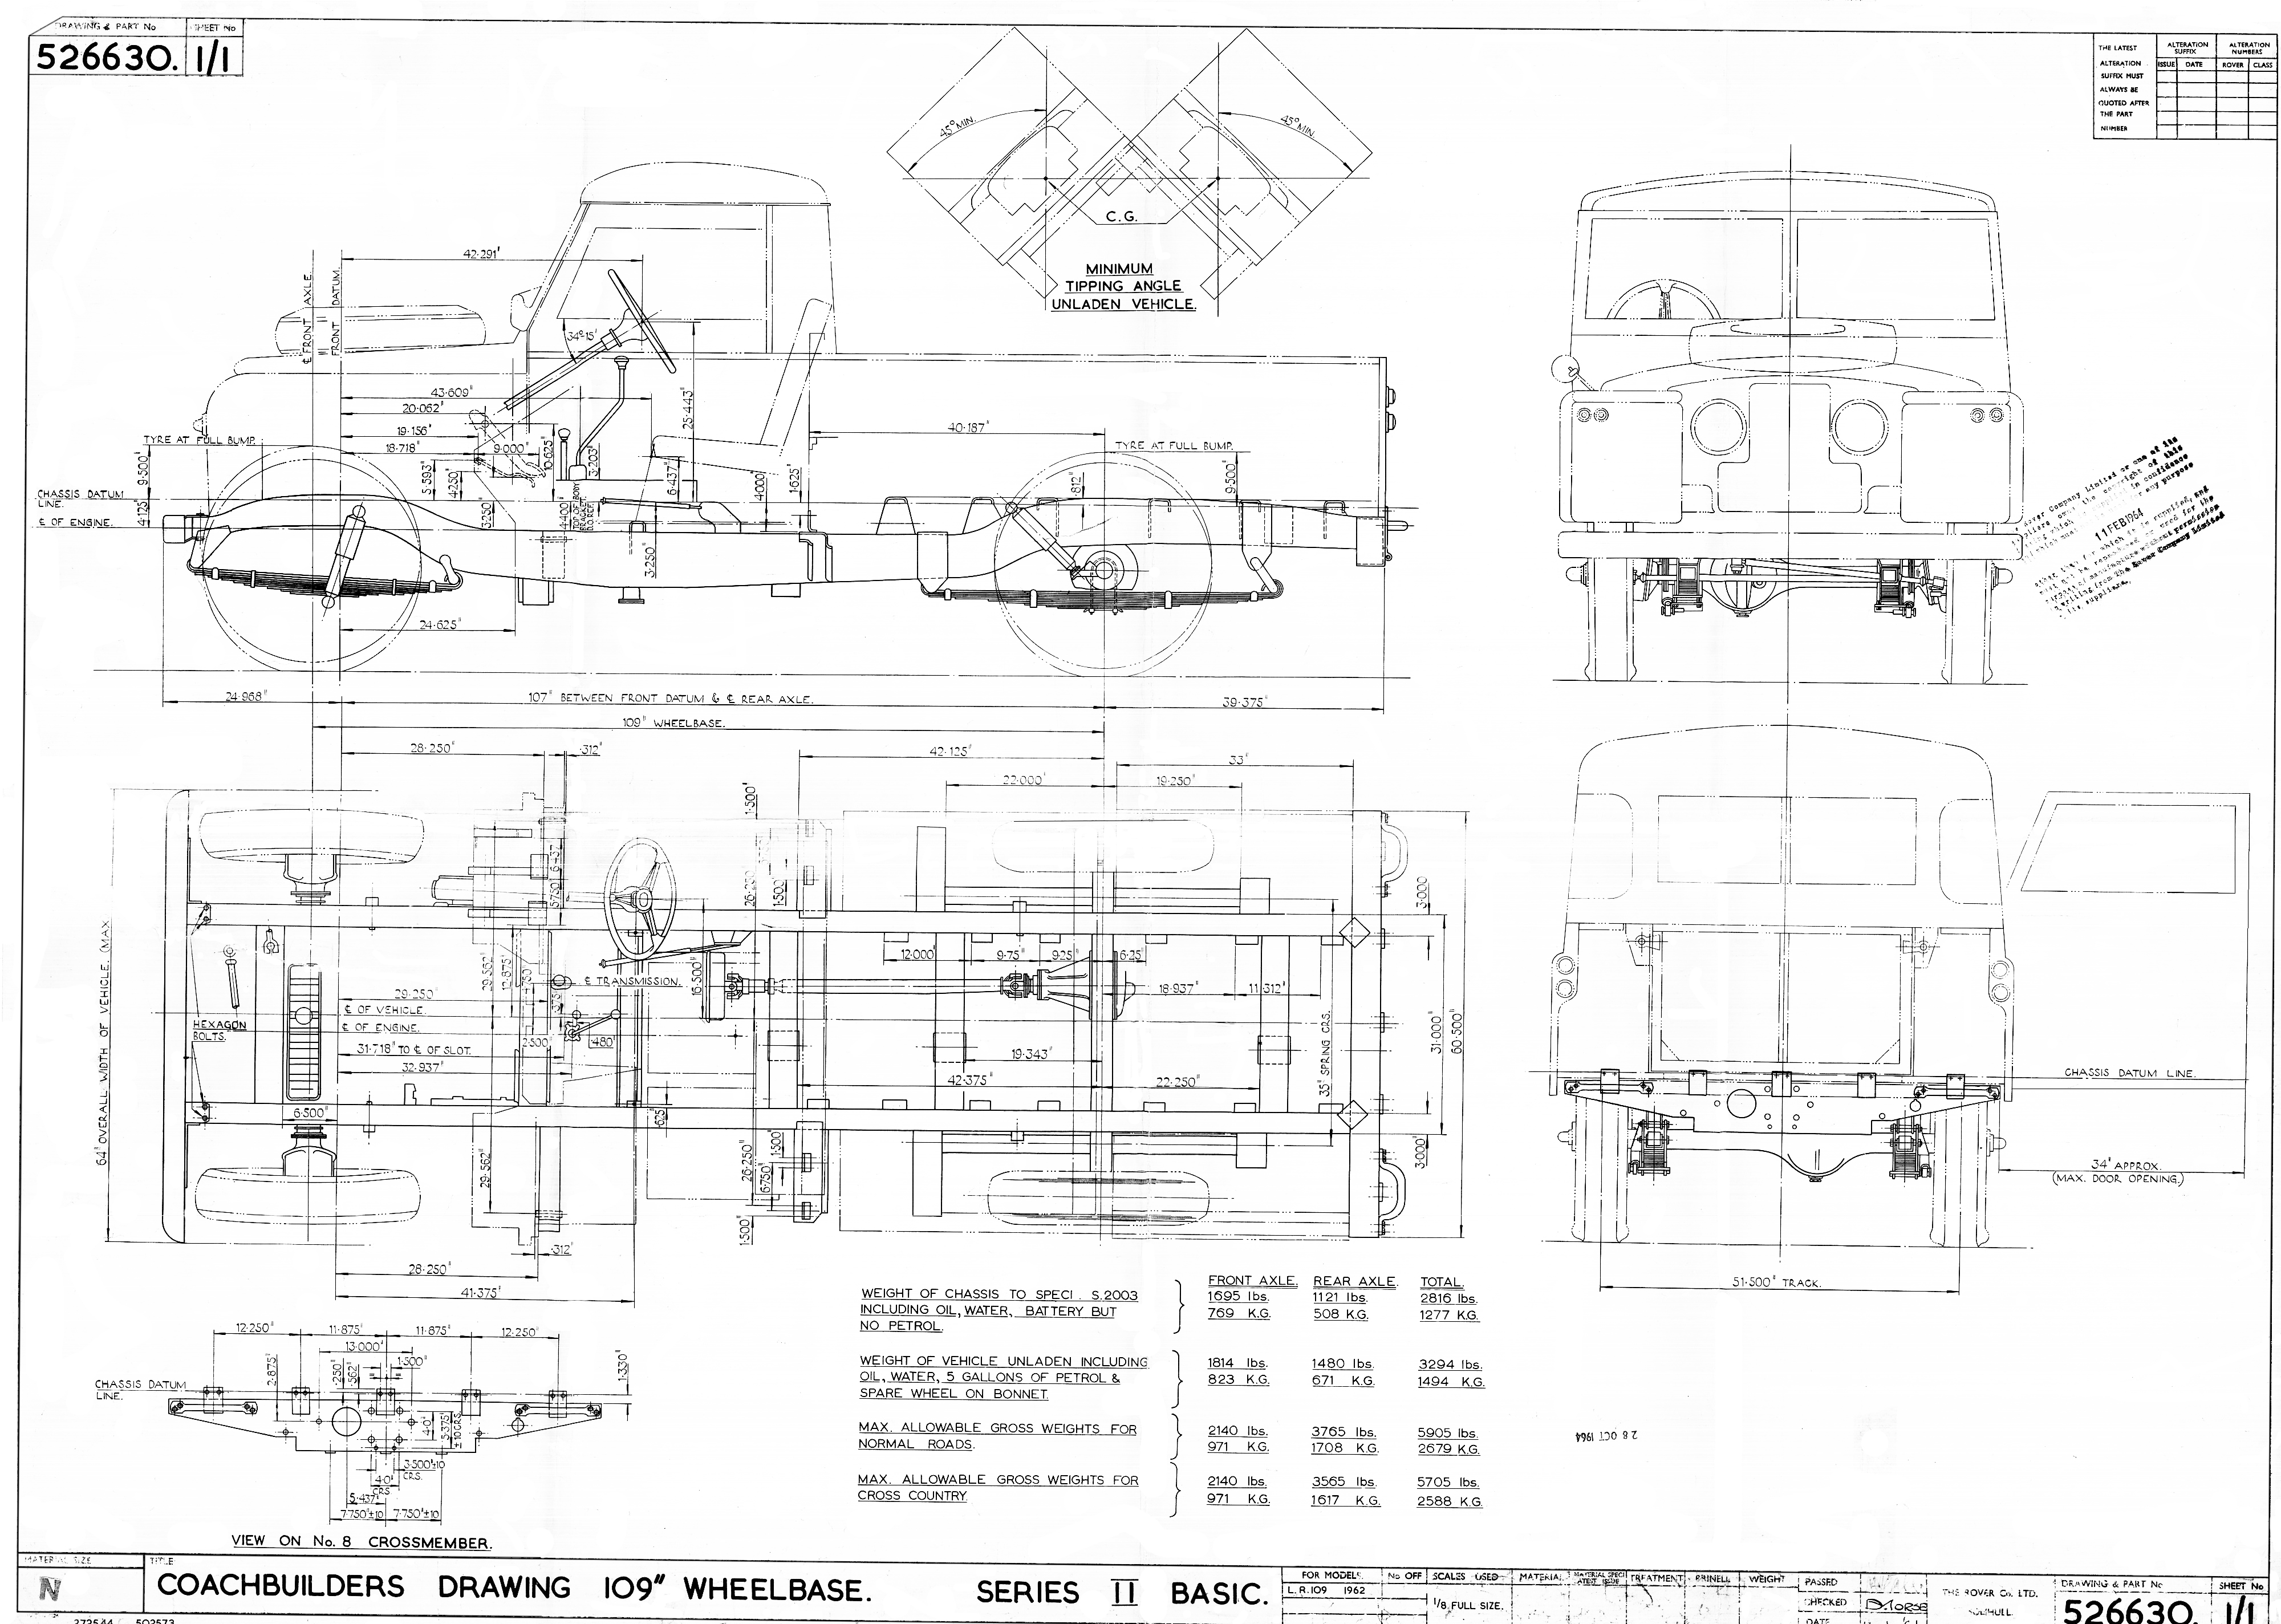 1974 series 3 land rover wiring diagram with Land Rover Defender Chassis Parts on 1995 Toyota Camry Radio Wiring Diagram further 1974 Mgb Fuse Box furthermore MERCwireindex in addition Defender 90 Wiring Diagram as well Land Rover Discovery 3 Wiring Diagram Pdf.